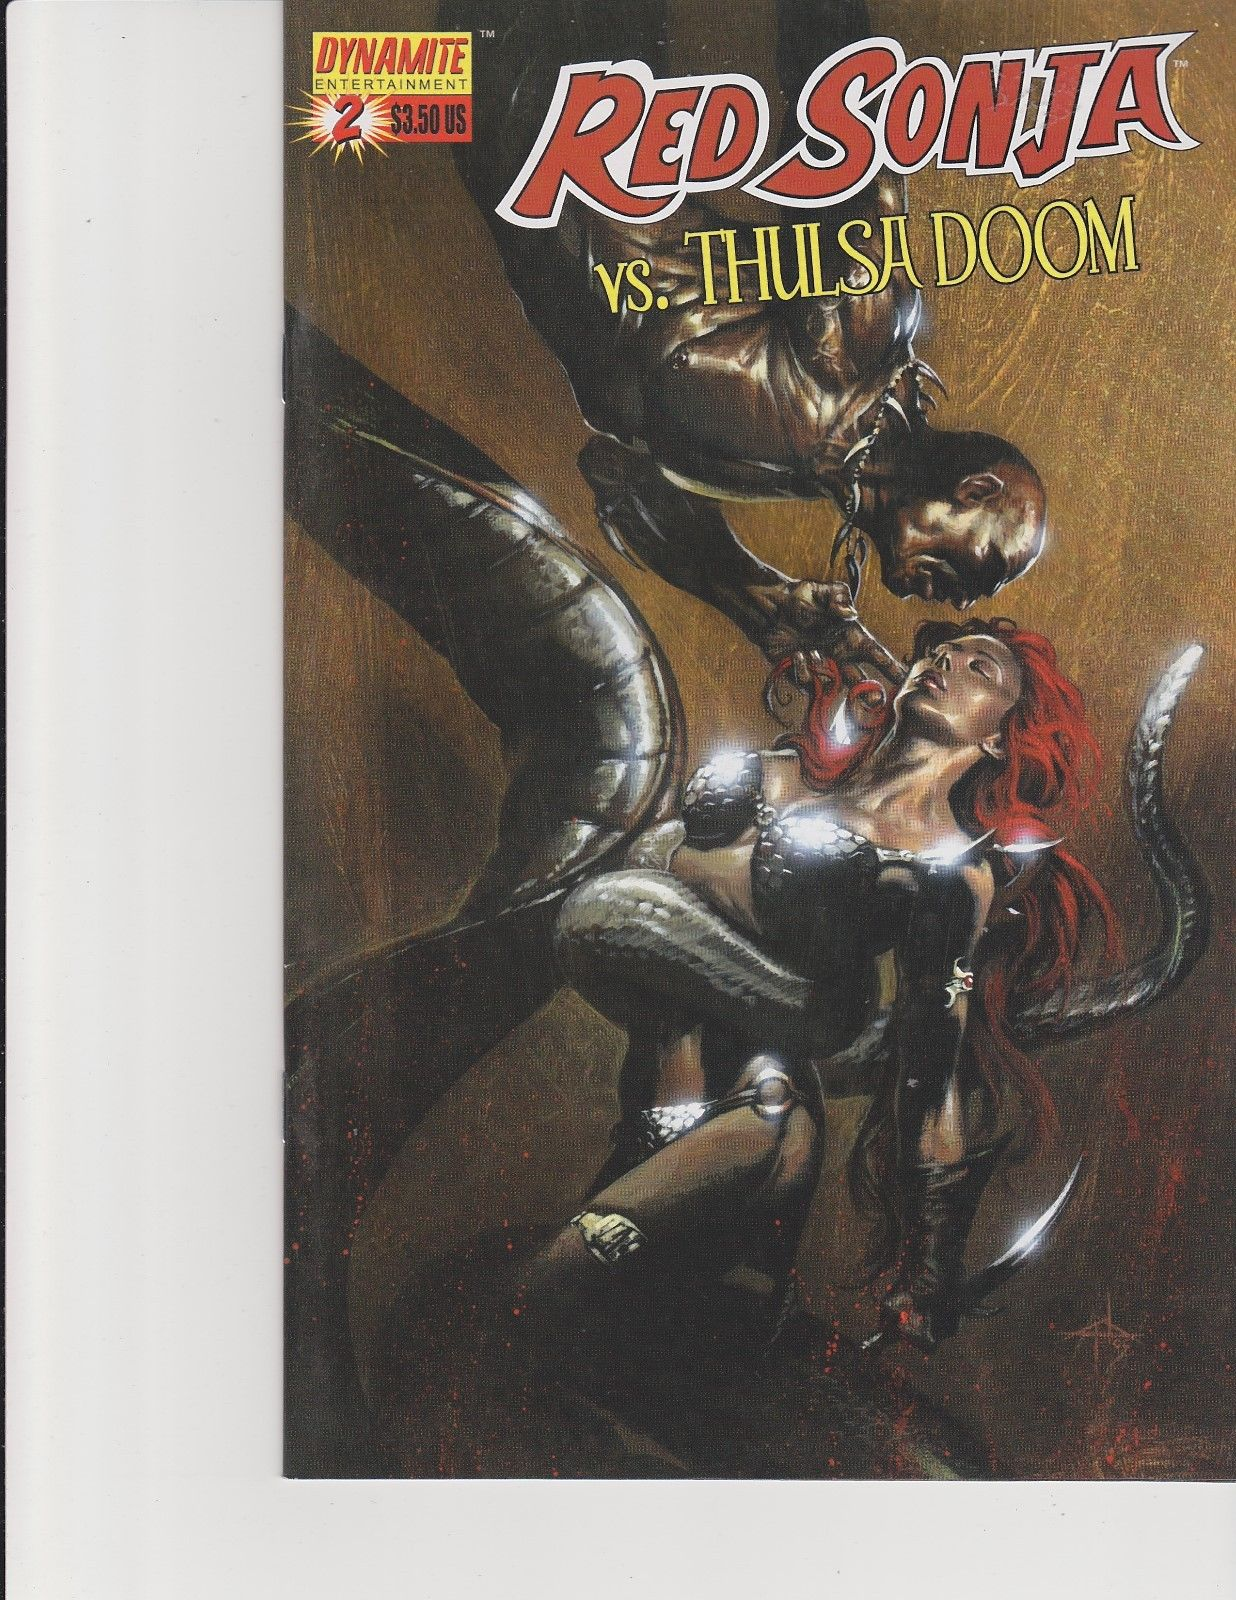 2013 Latest Collection Of Red Sonja #18 Cover A Dynamite